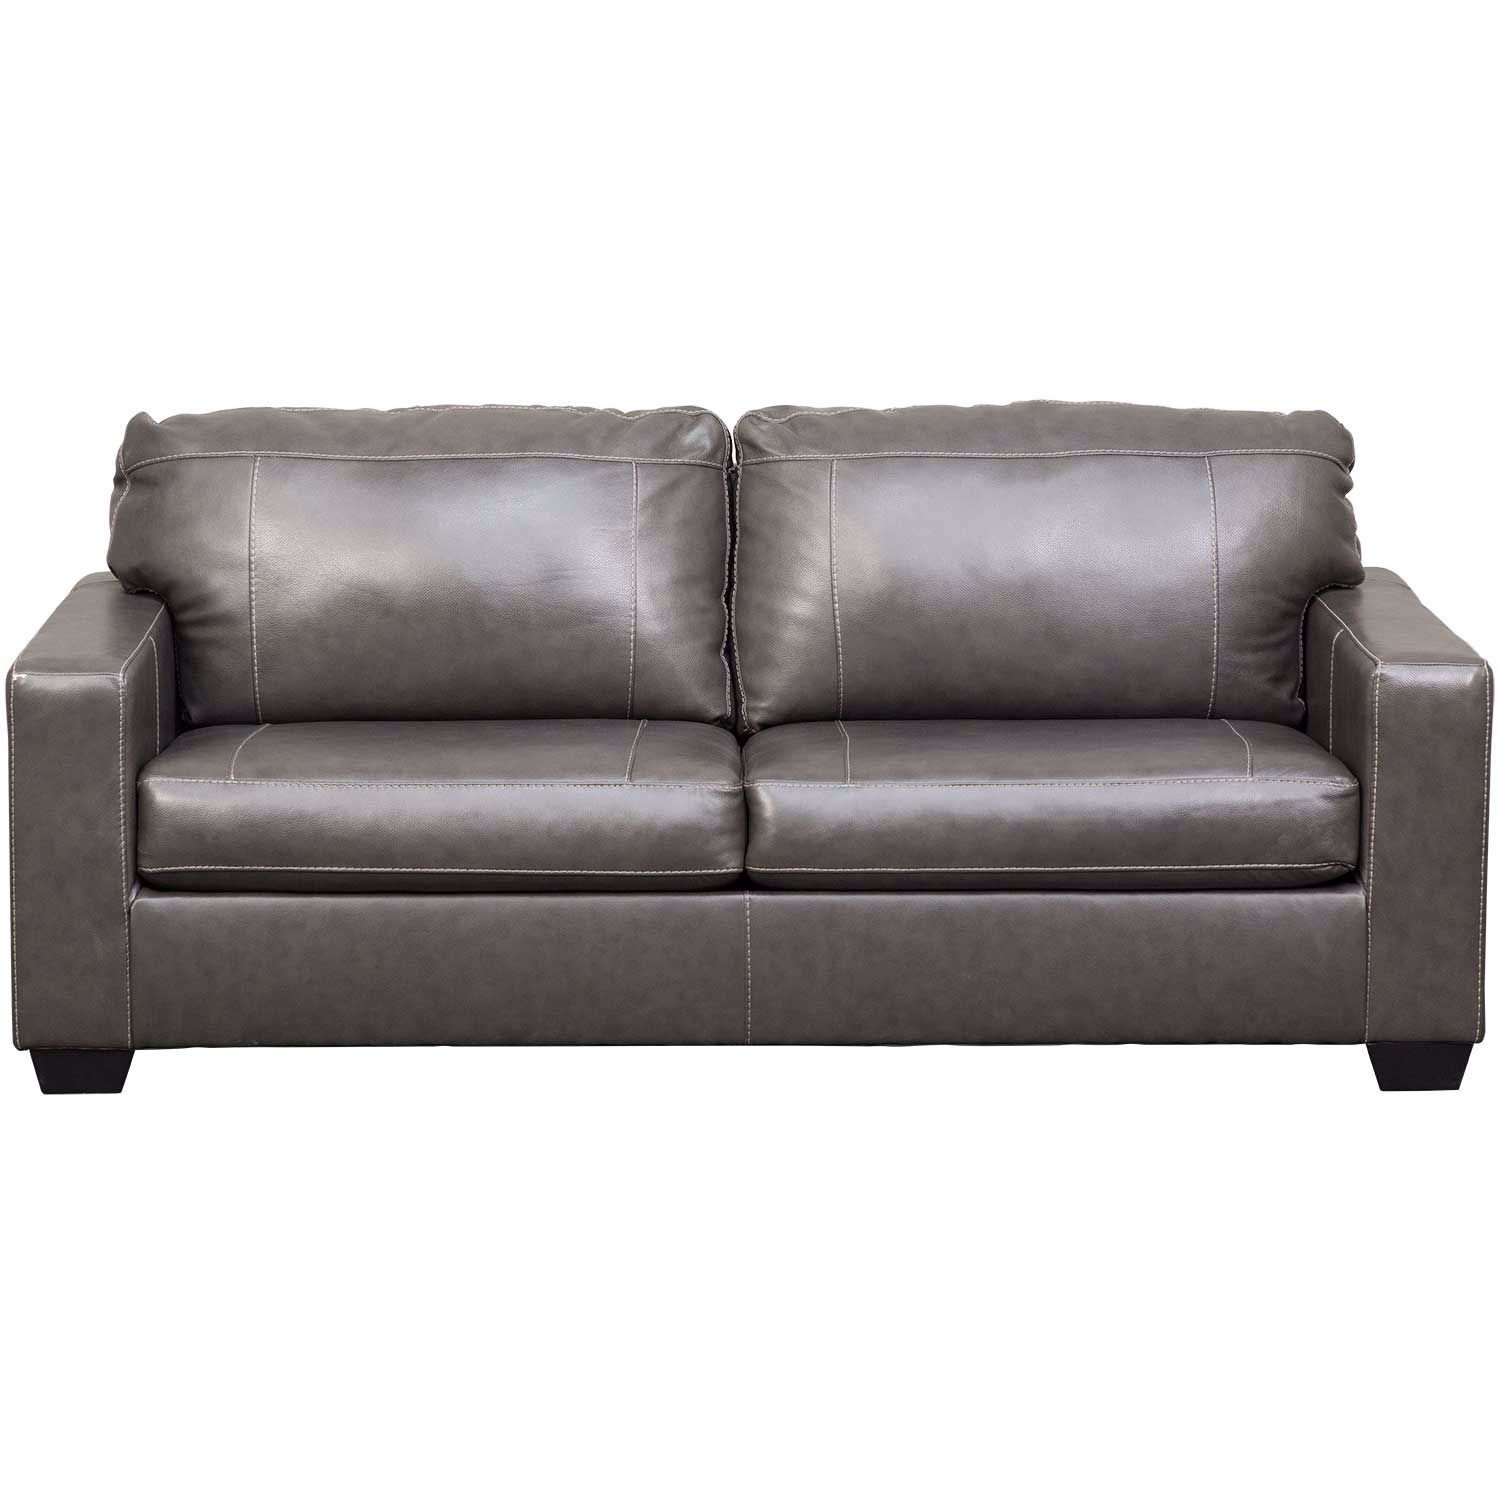 Morelos Gray Italian Leather Sofa